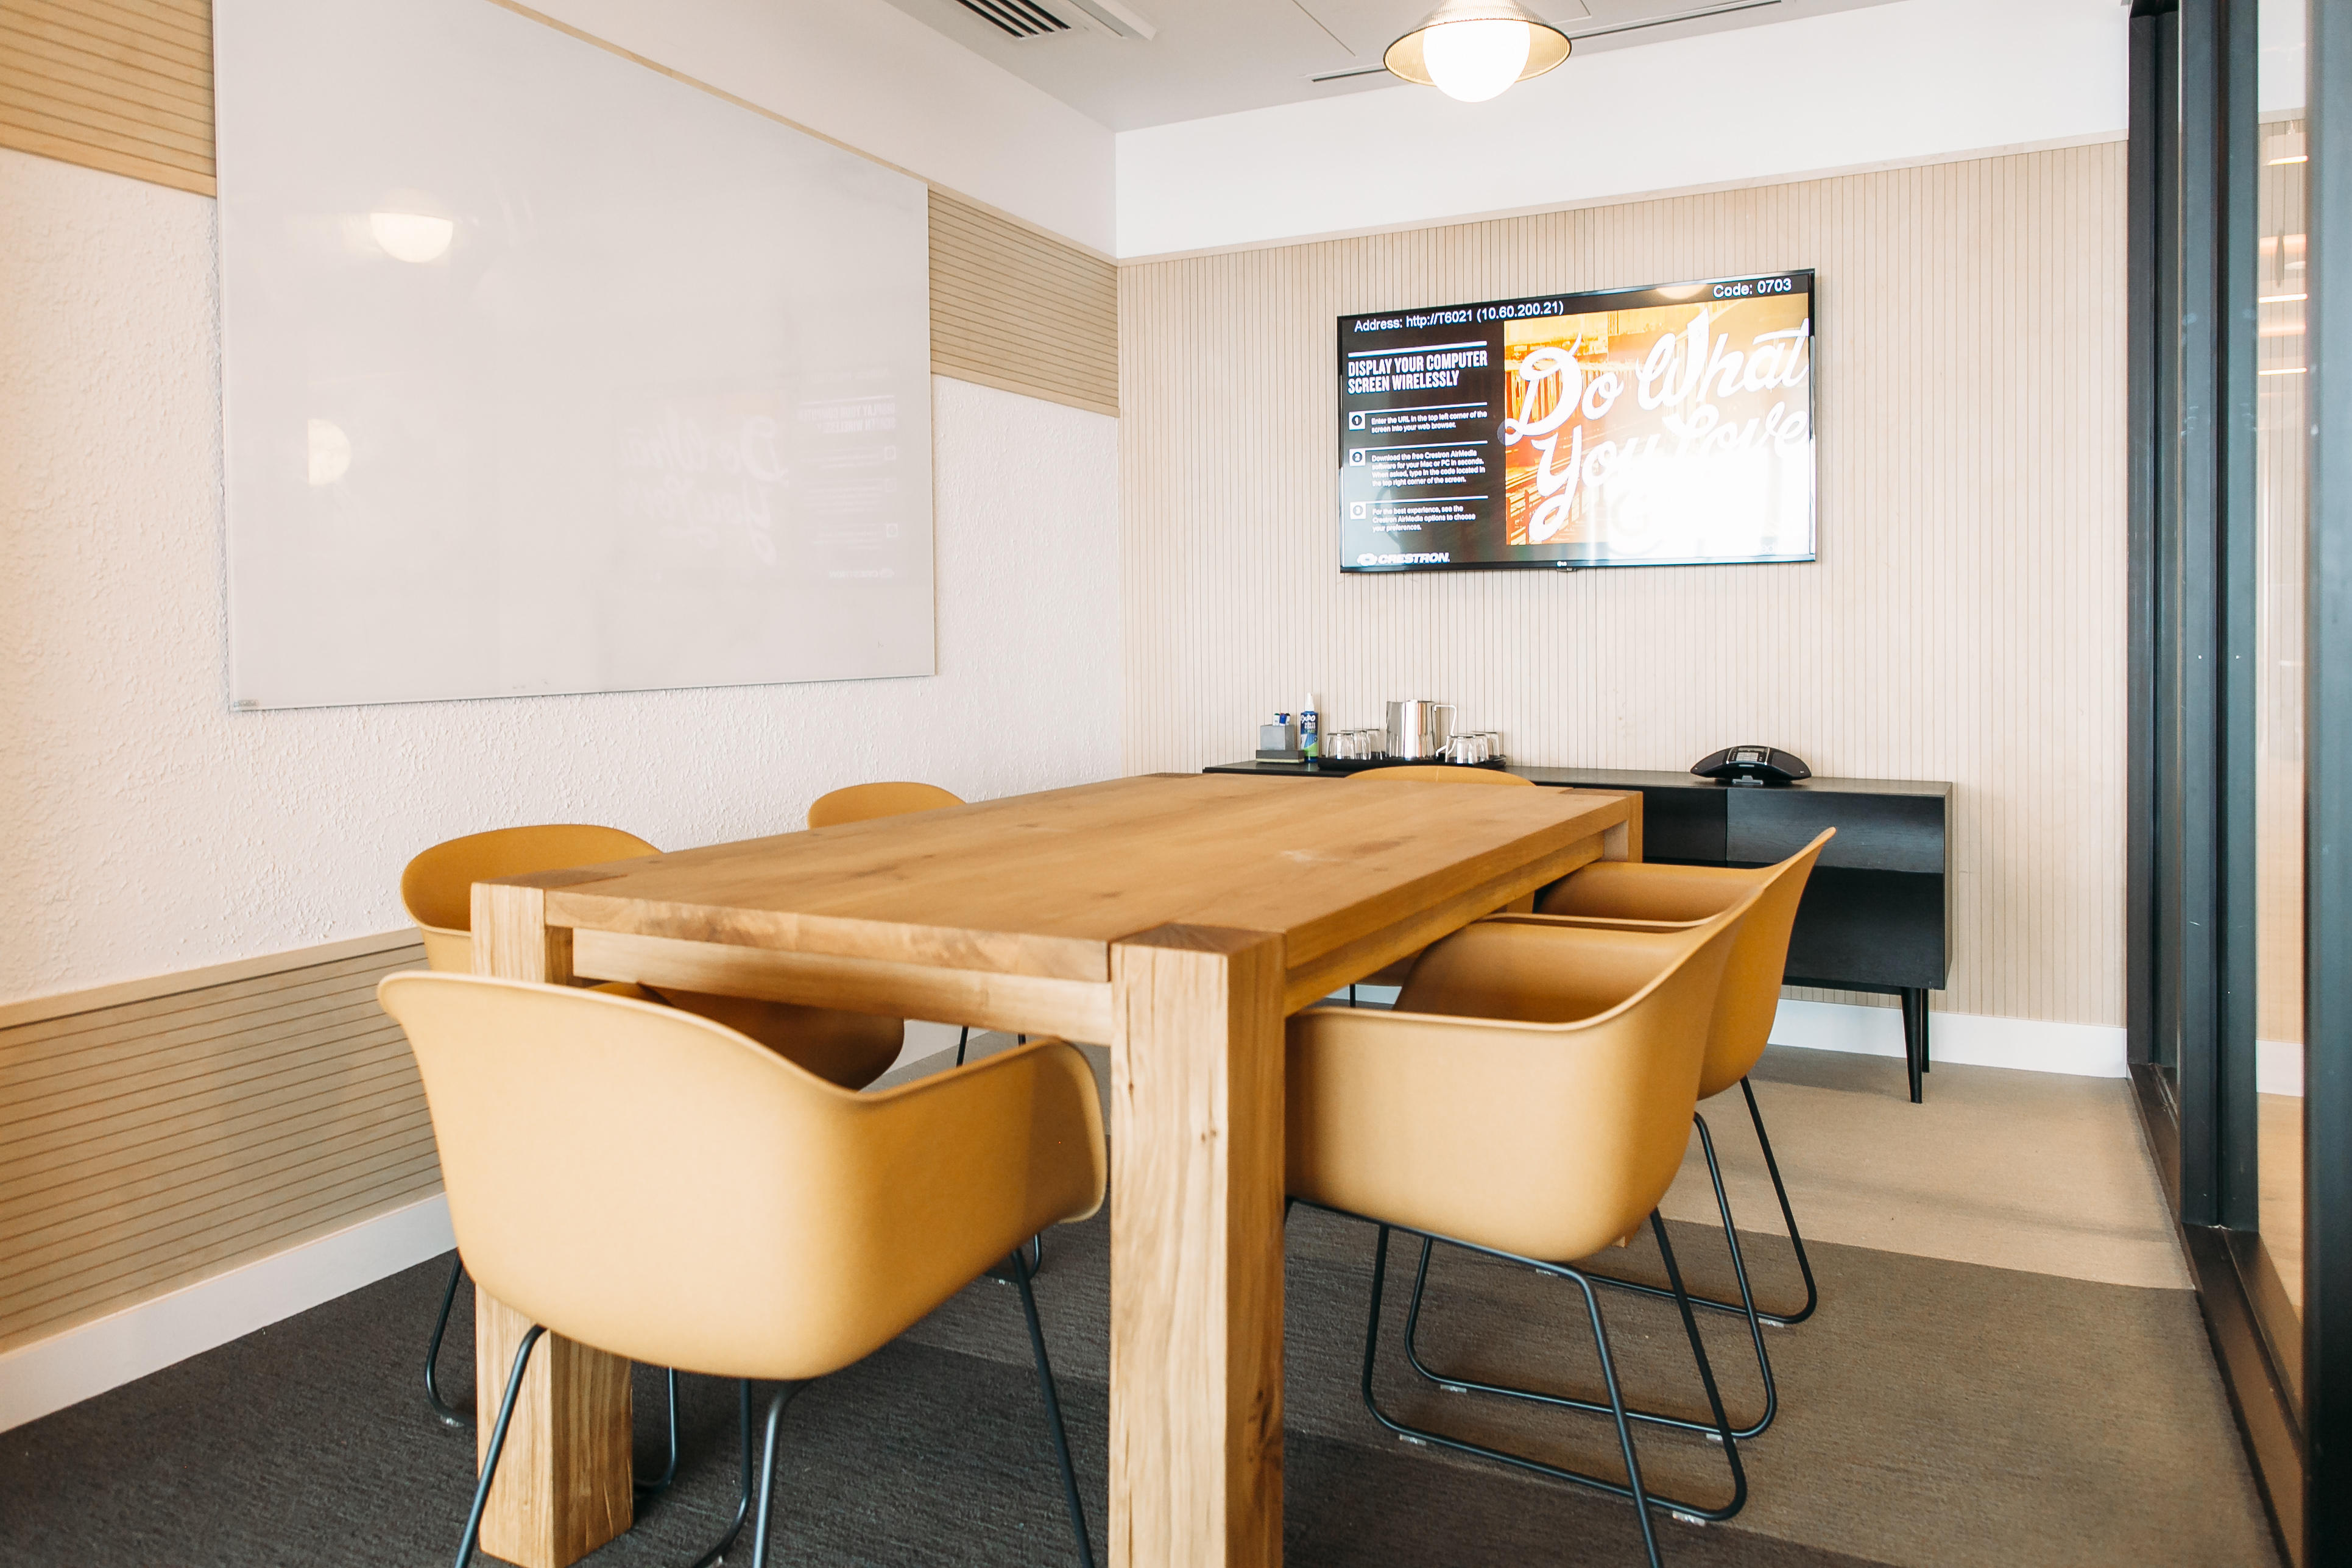 Example shown: Conference Room (Gas Tower, Los Angeles) WeWork 33 Queen St London 020 3695 7895